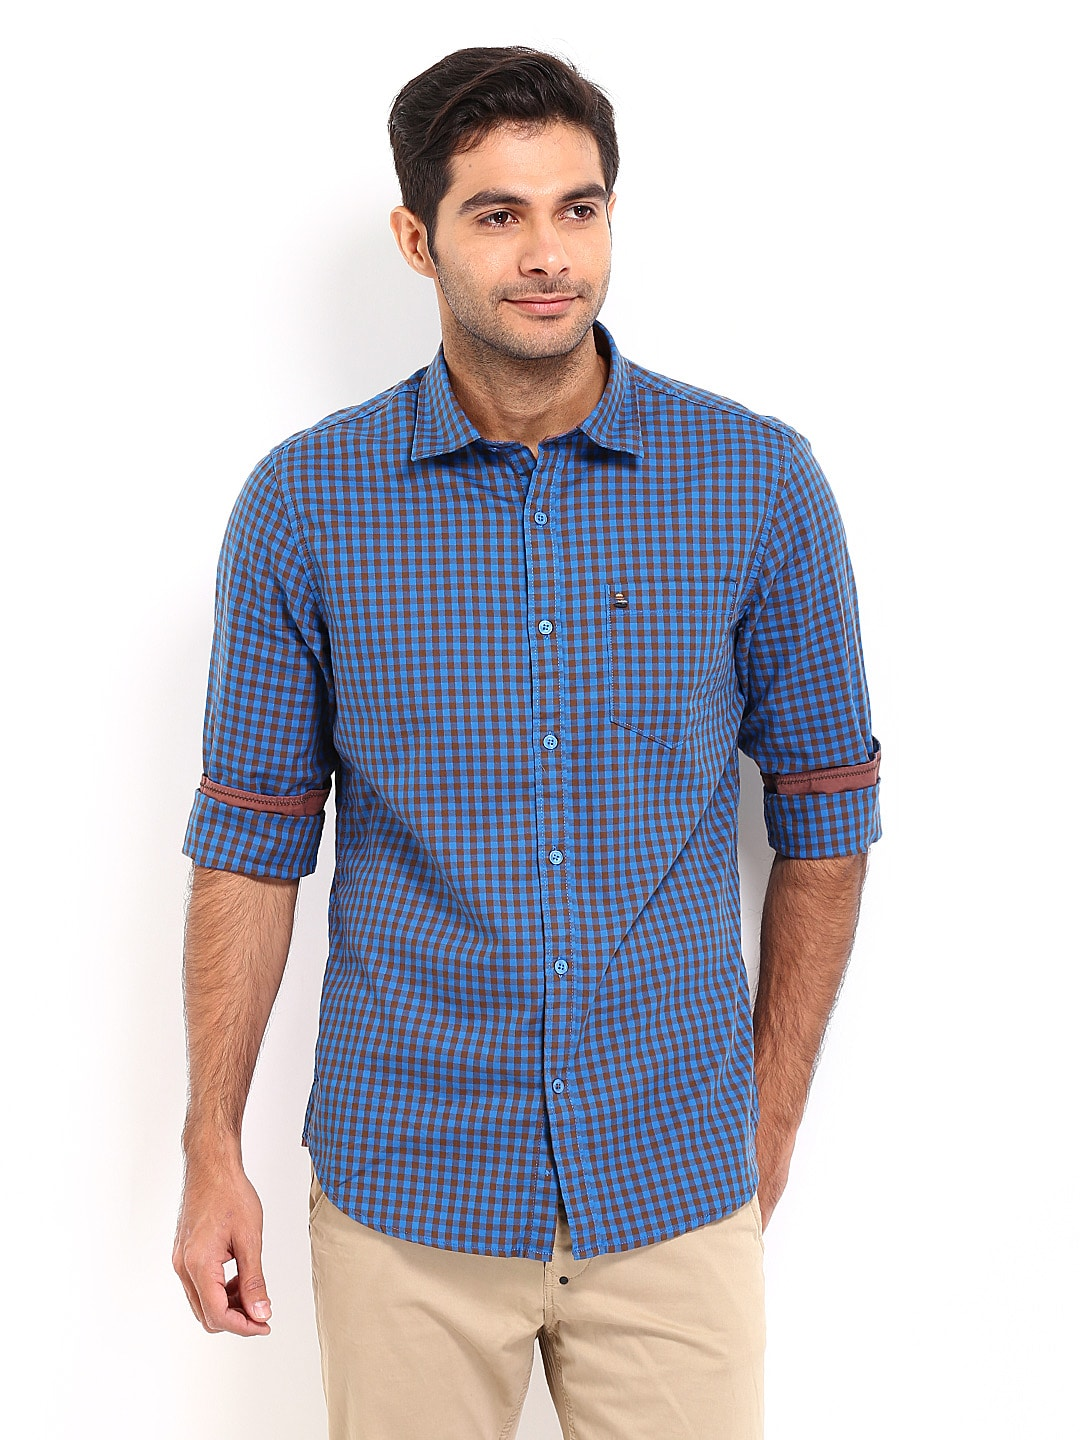 Oxemberg Oxemberg Men Blue & Brown Checked Slim Fit Casual Shirt (Multicolor)